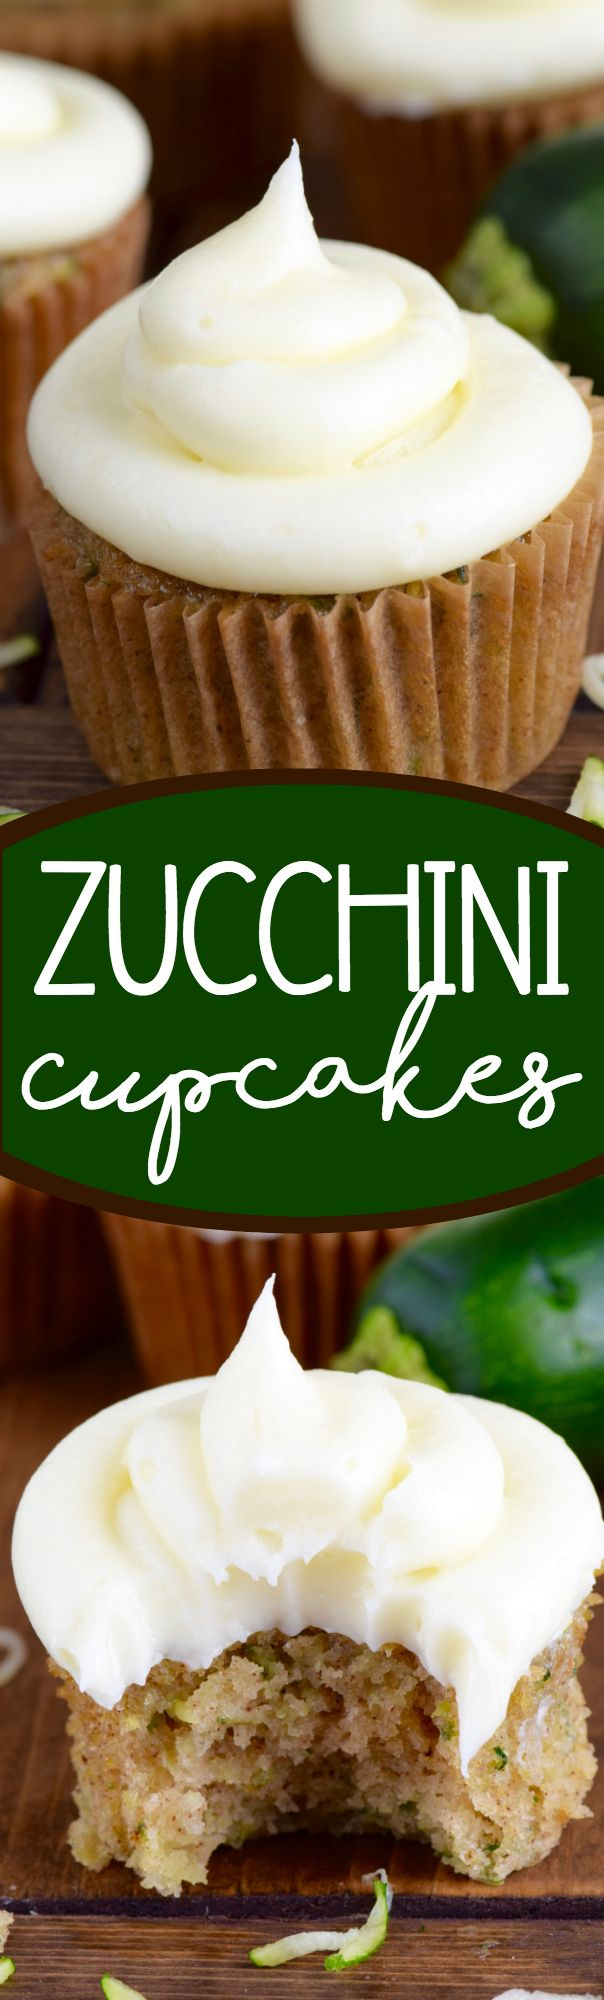 These Zucchini Cupcakes are amazingly delicious and moist! A whole batch will get DEVOURED before you know it!: